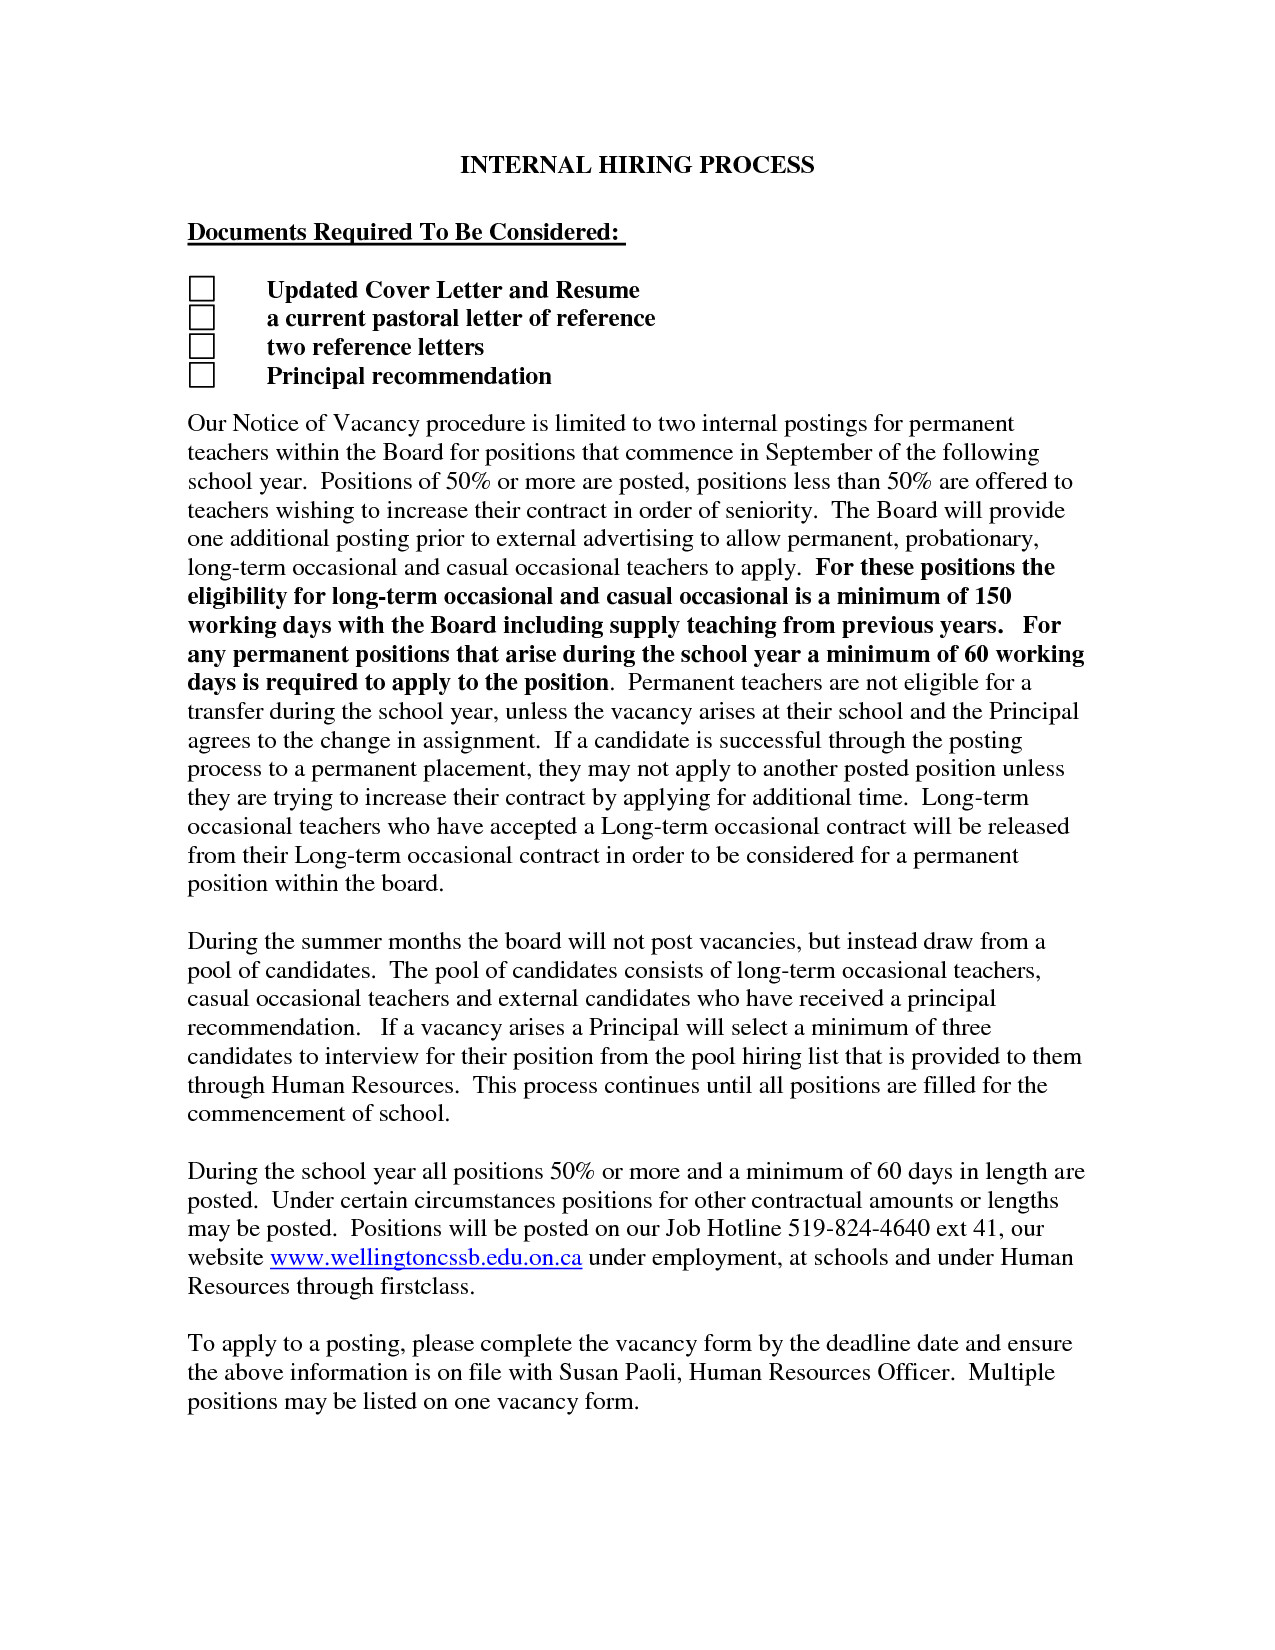 Cover Letters for Internal Positions Internal Cover Letter Pics tomyumtumweb Com